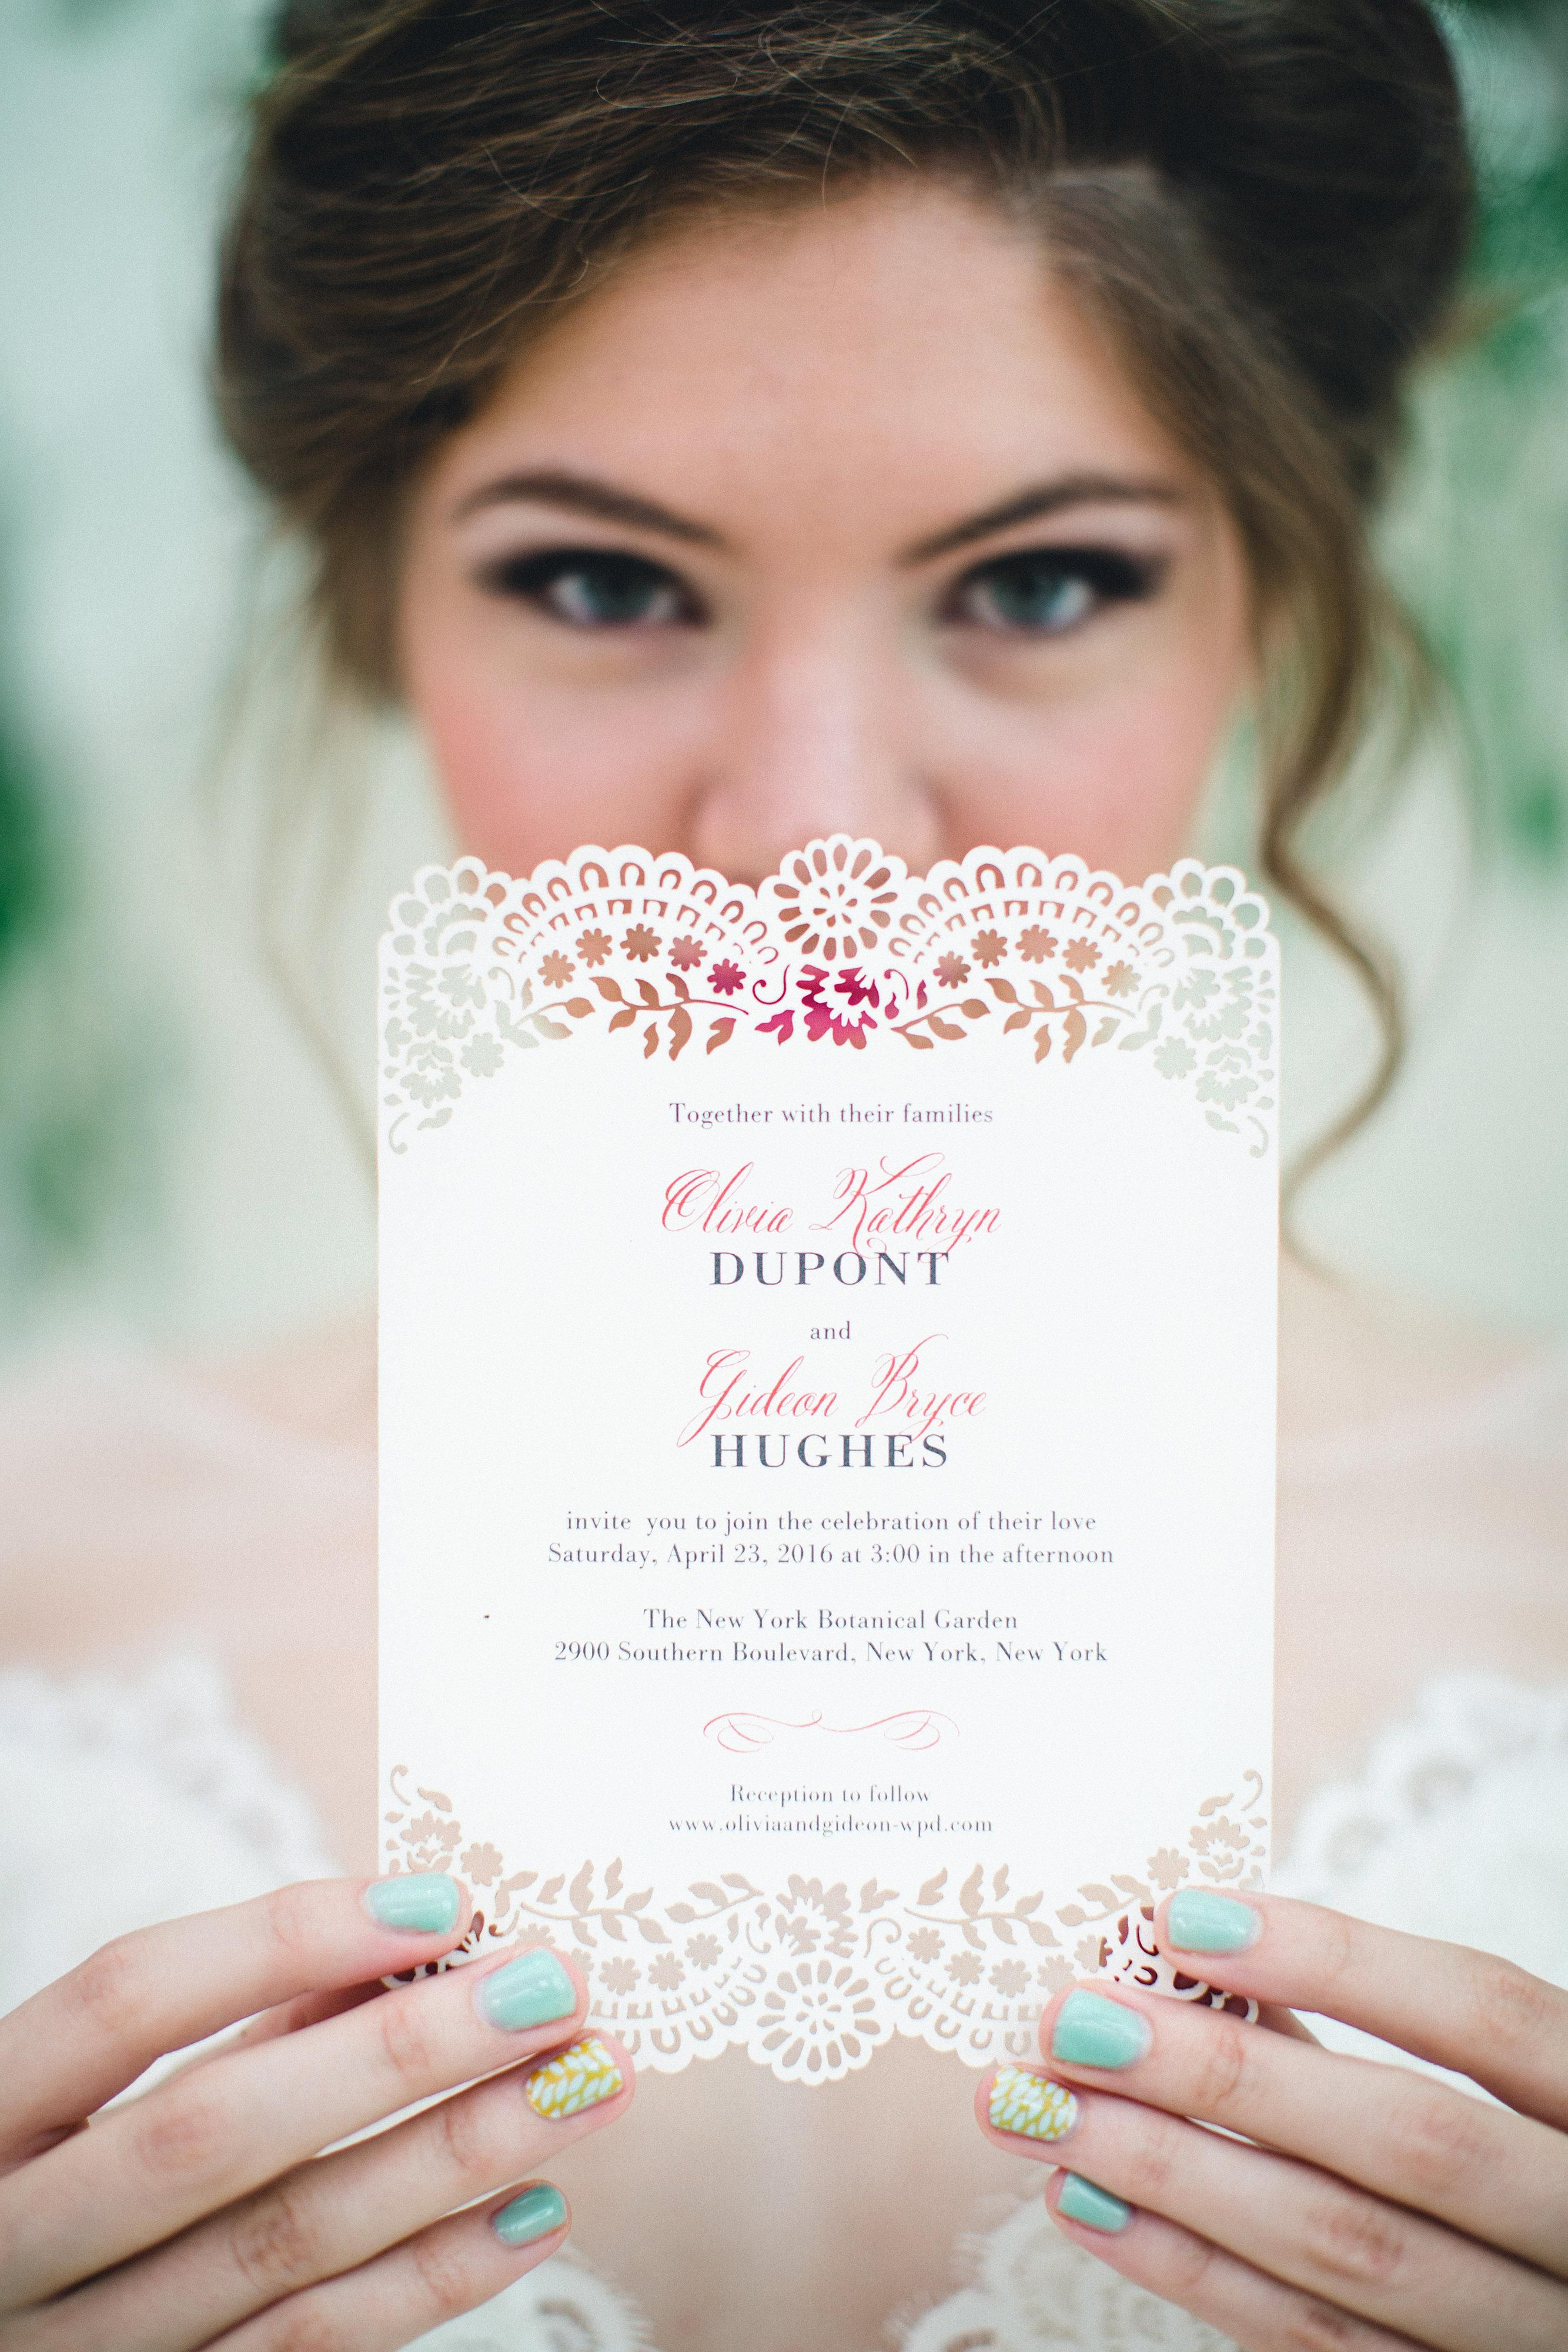 Gorgeous Lace Lasercut Wedding Invitations: From Your Save The Dates, Bridal  Shower, To